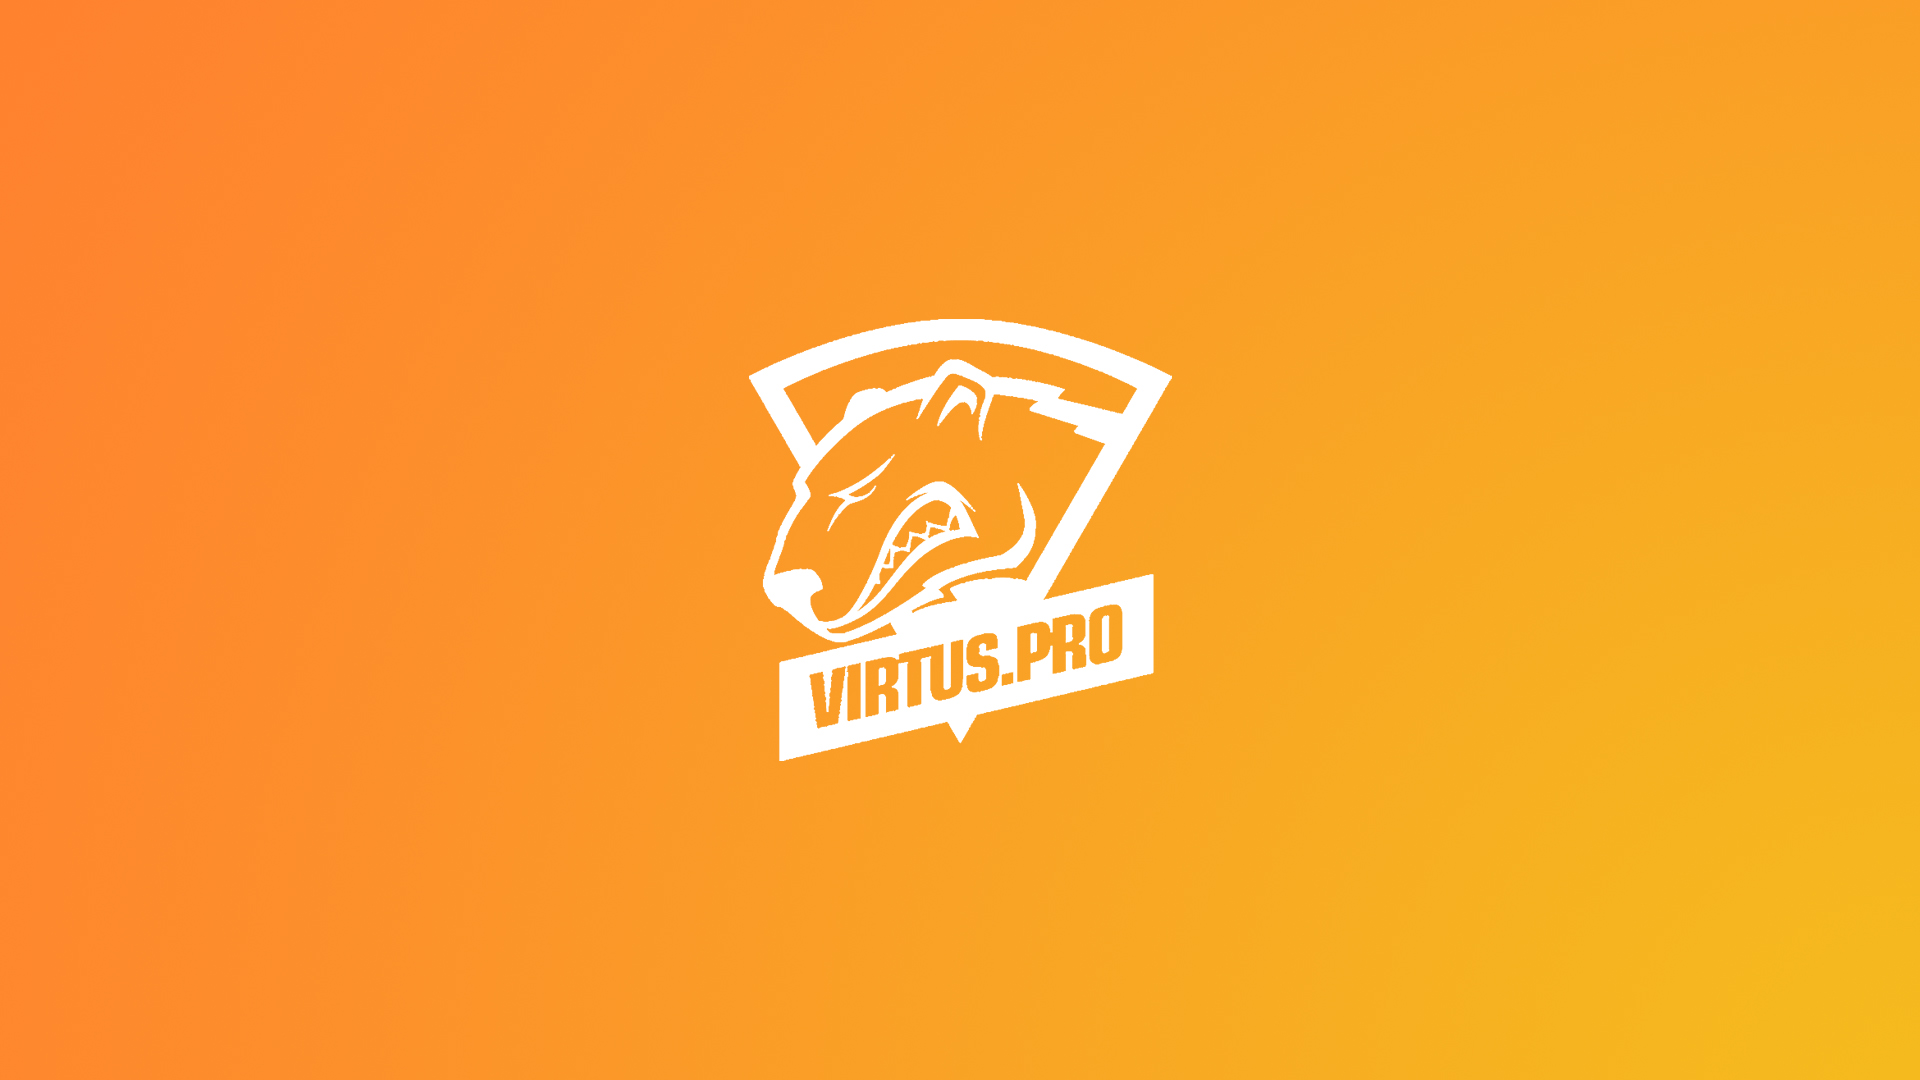 Fnatic Wallpaper Iphone Minimalistic Wallpapers Of Top Cs Go Teams Bc Gb